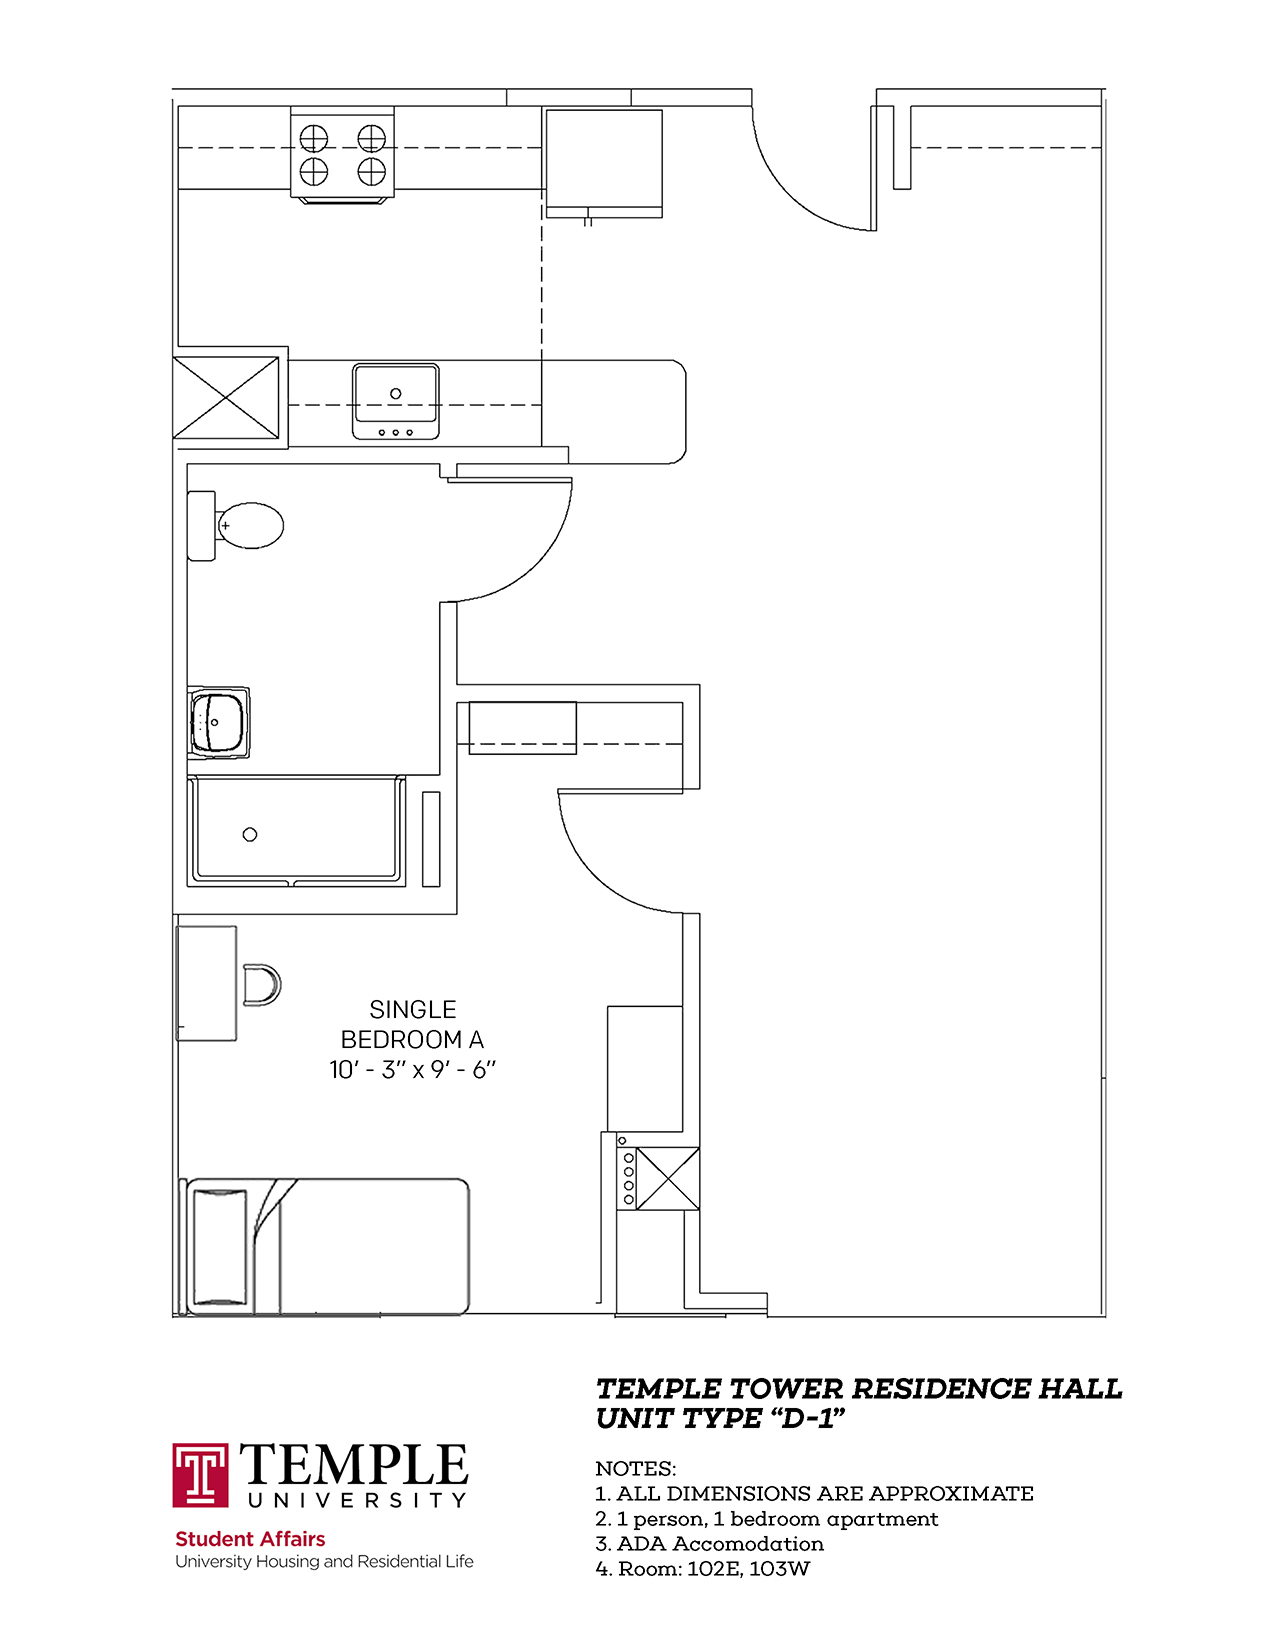 Temple Towers: Unit D1 - 1 person, 1 bedroom Apartment